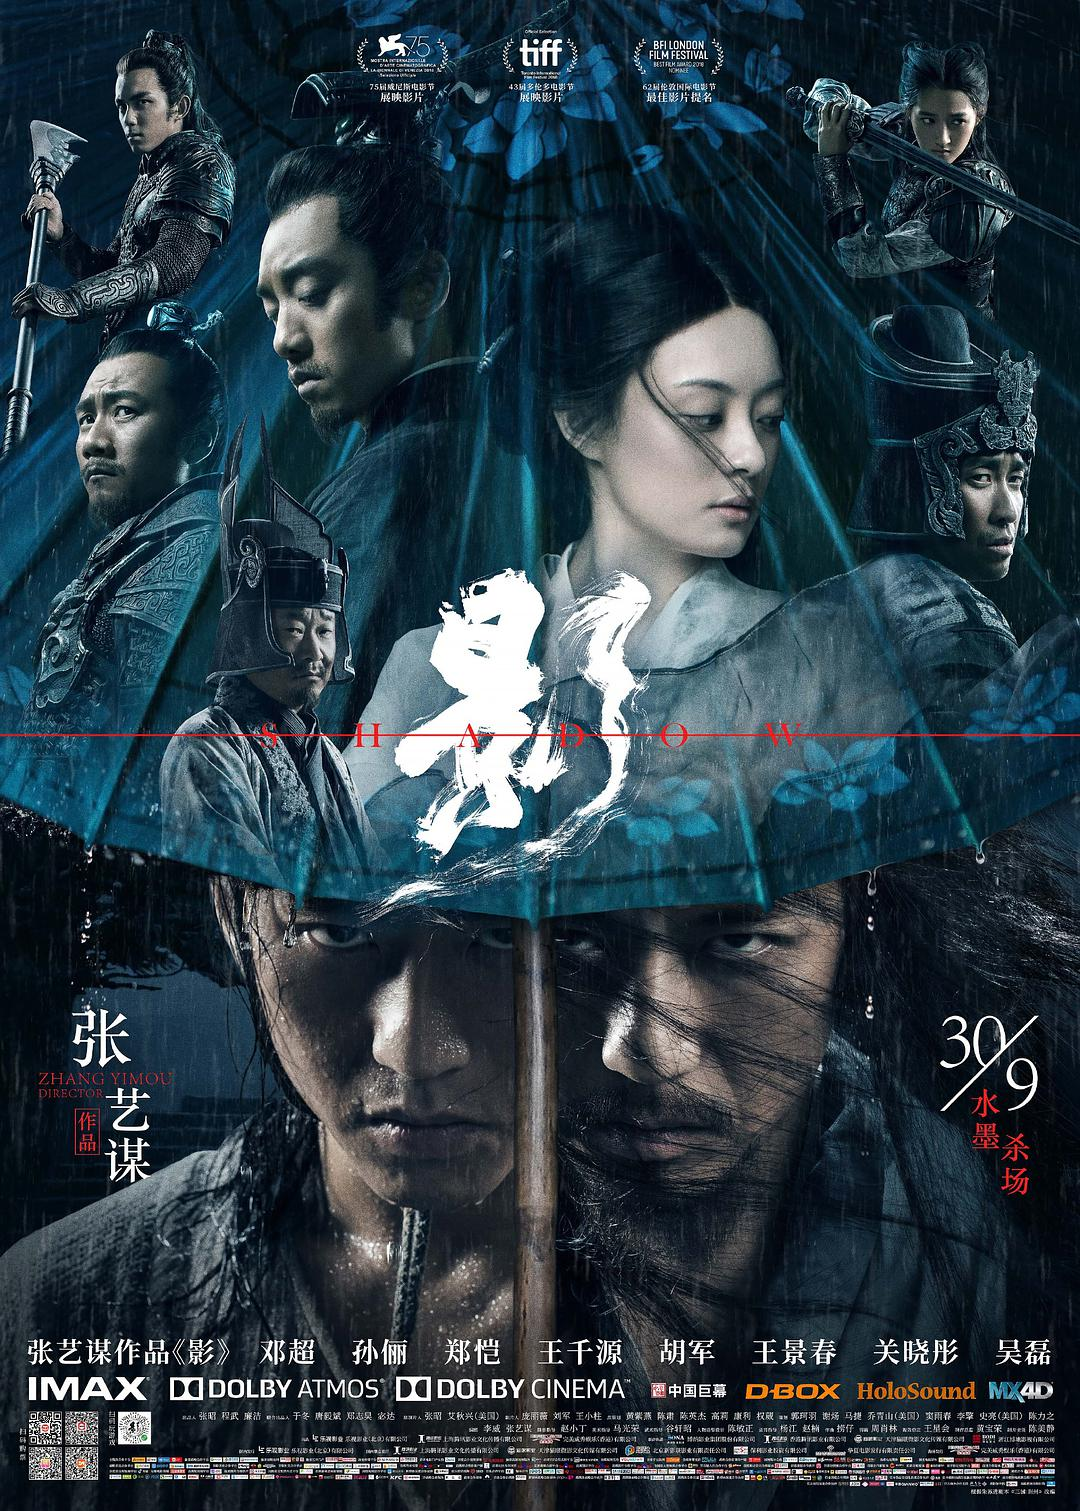 24 Movie Pennsylvasia Zhang Yimou S 2018 Film Shadow 影 In Pittsburgh